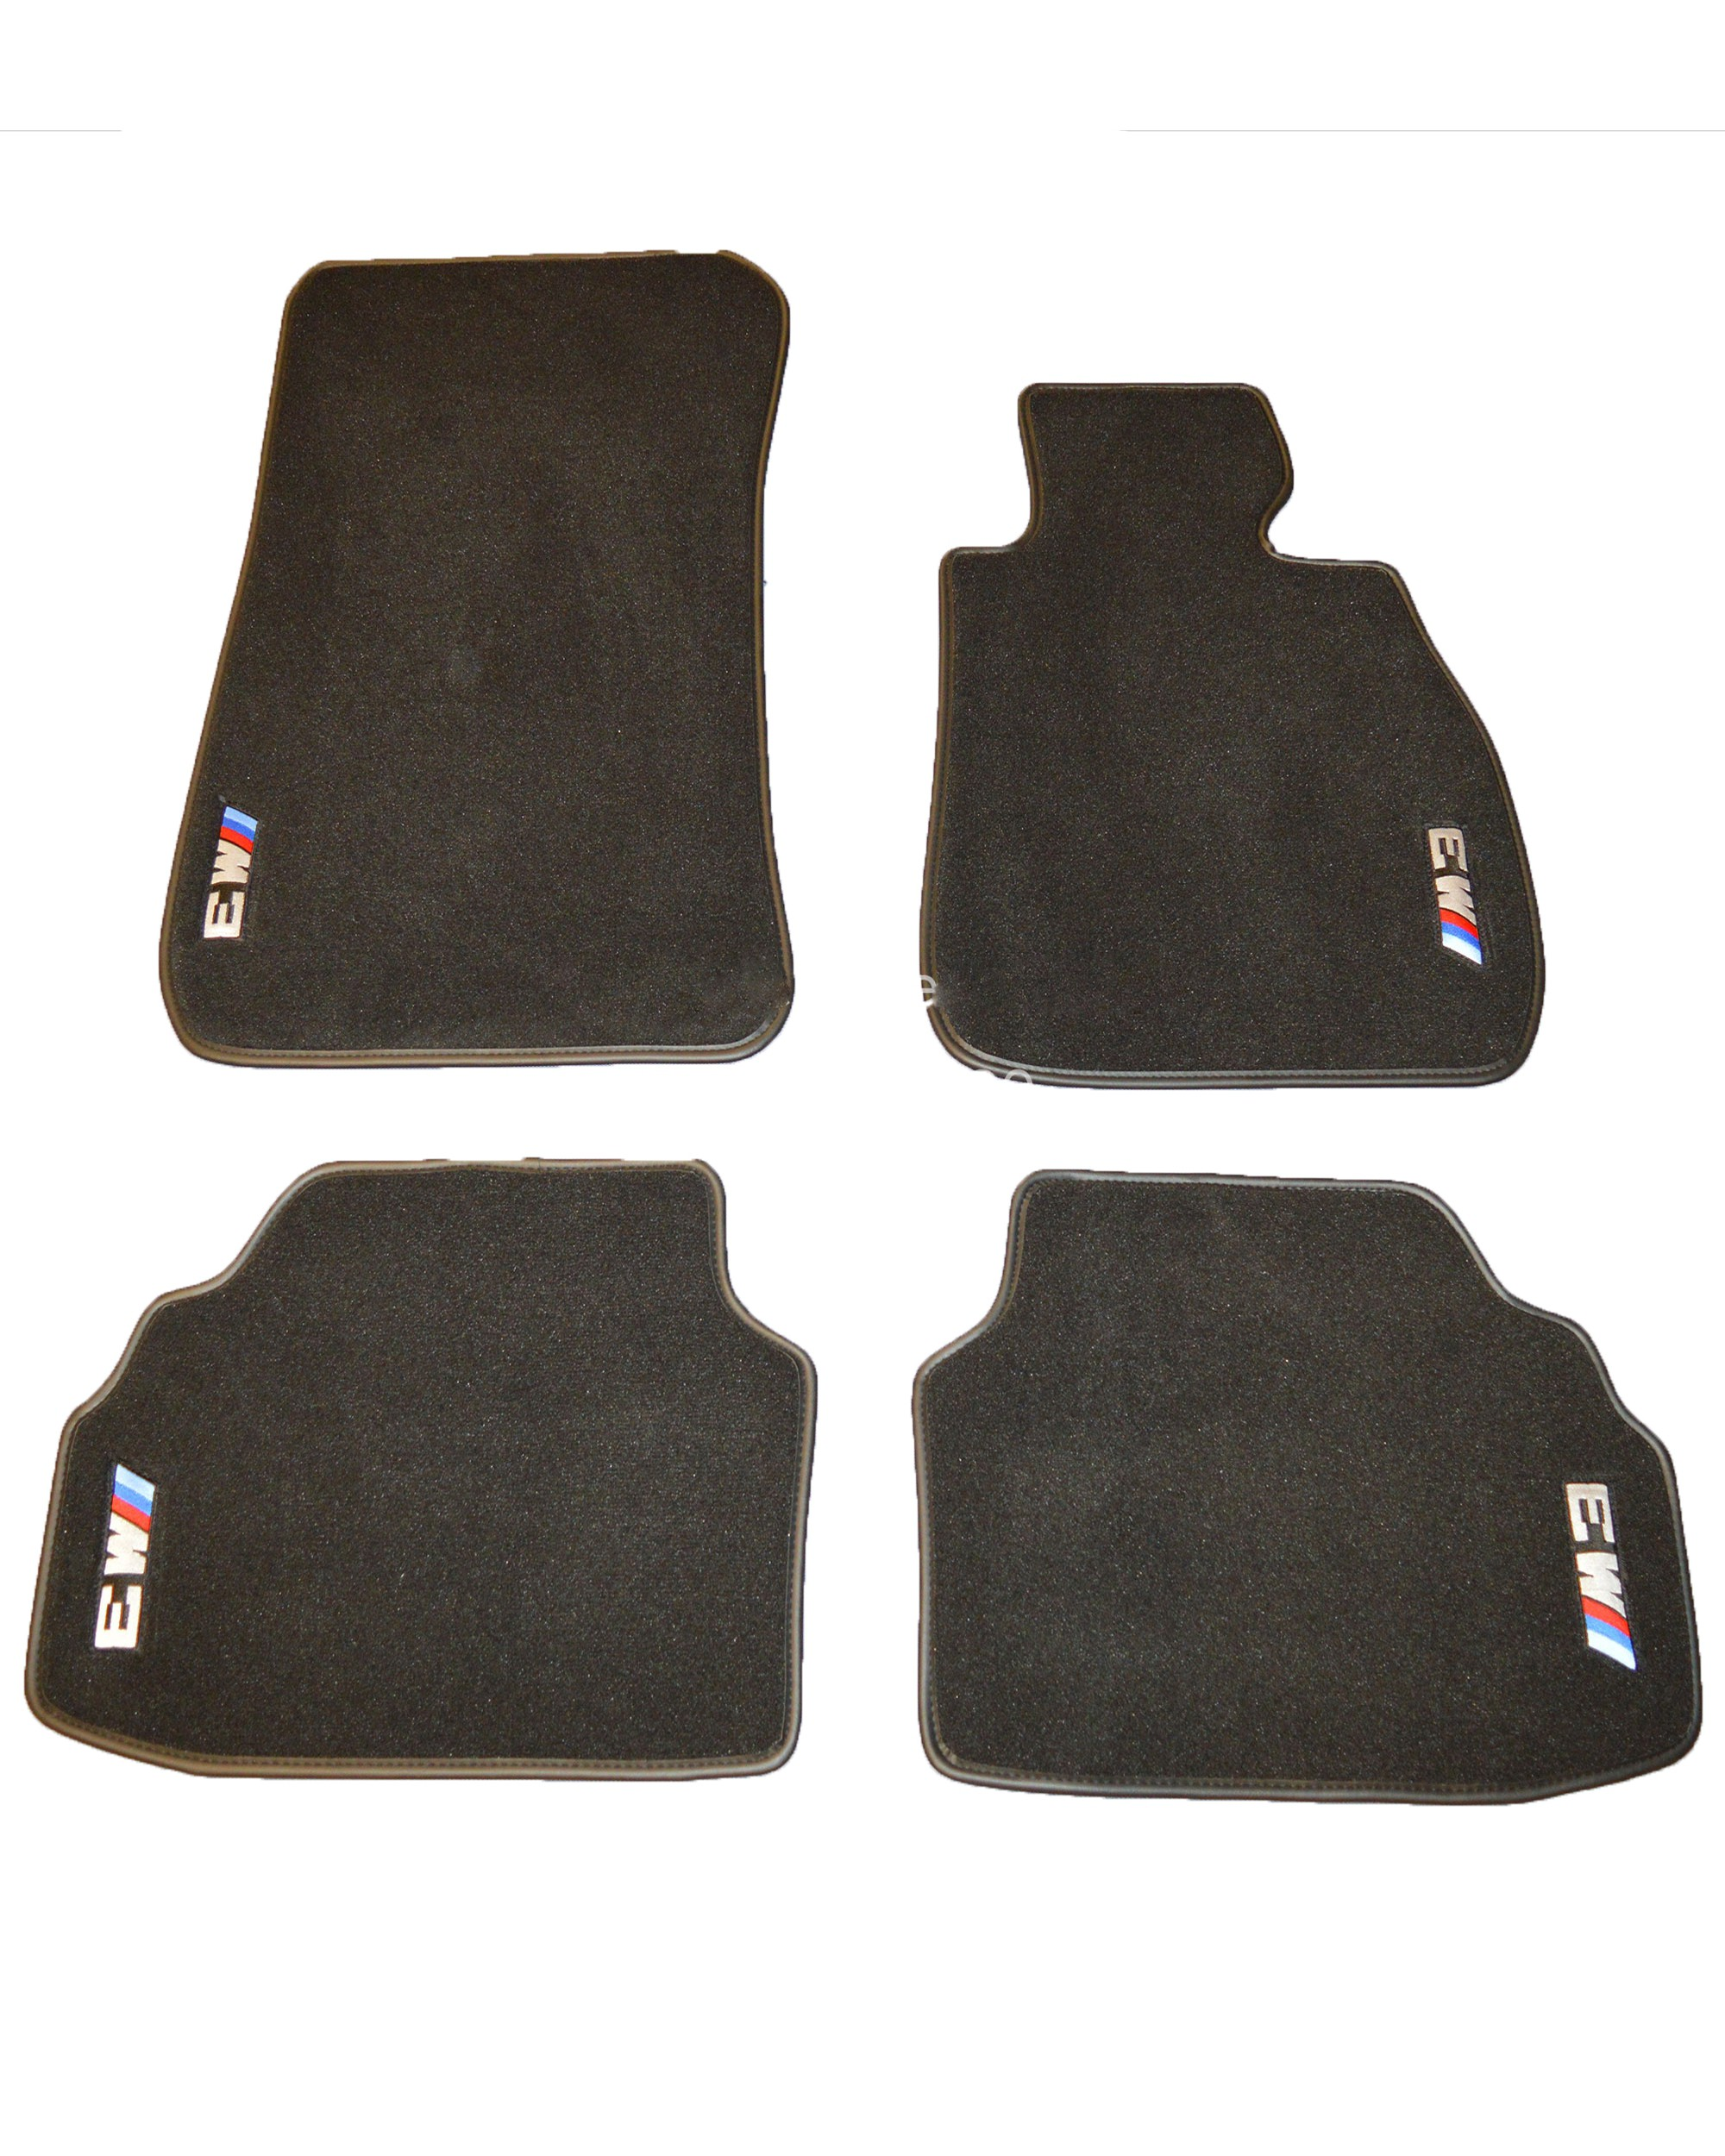 BMW M3 e90 tailored floor mats